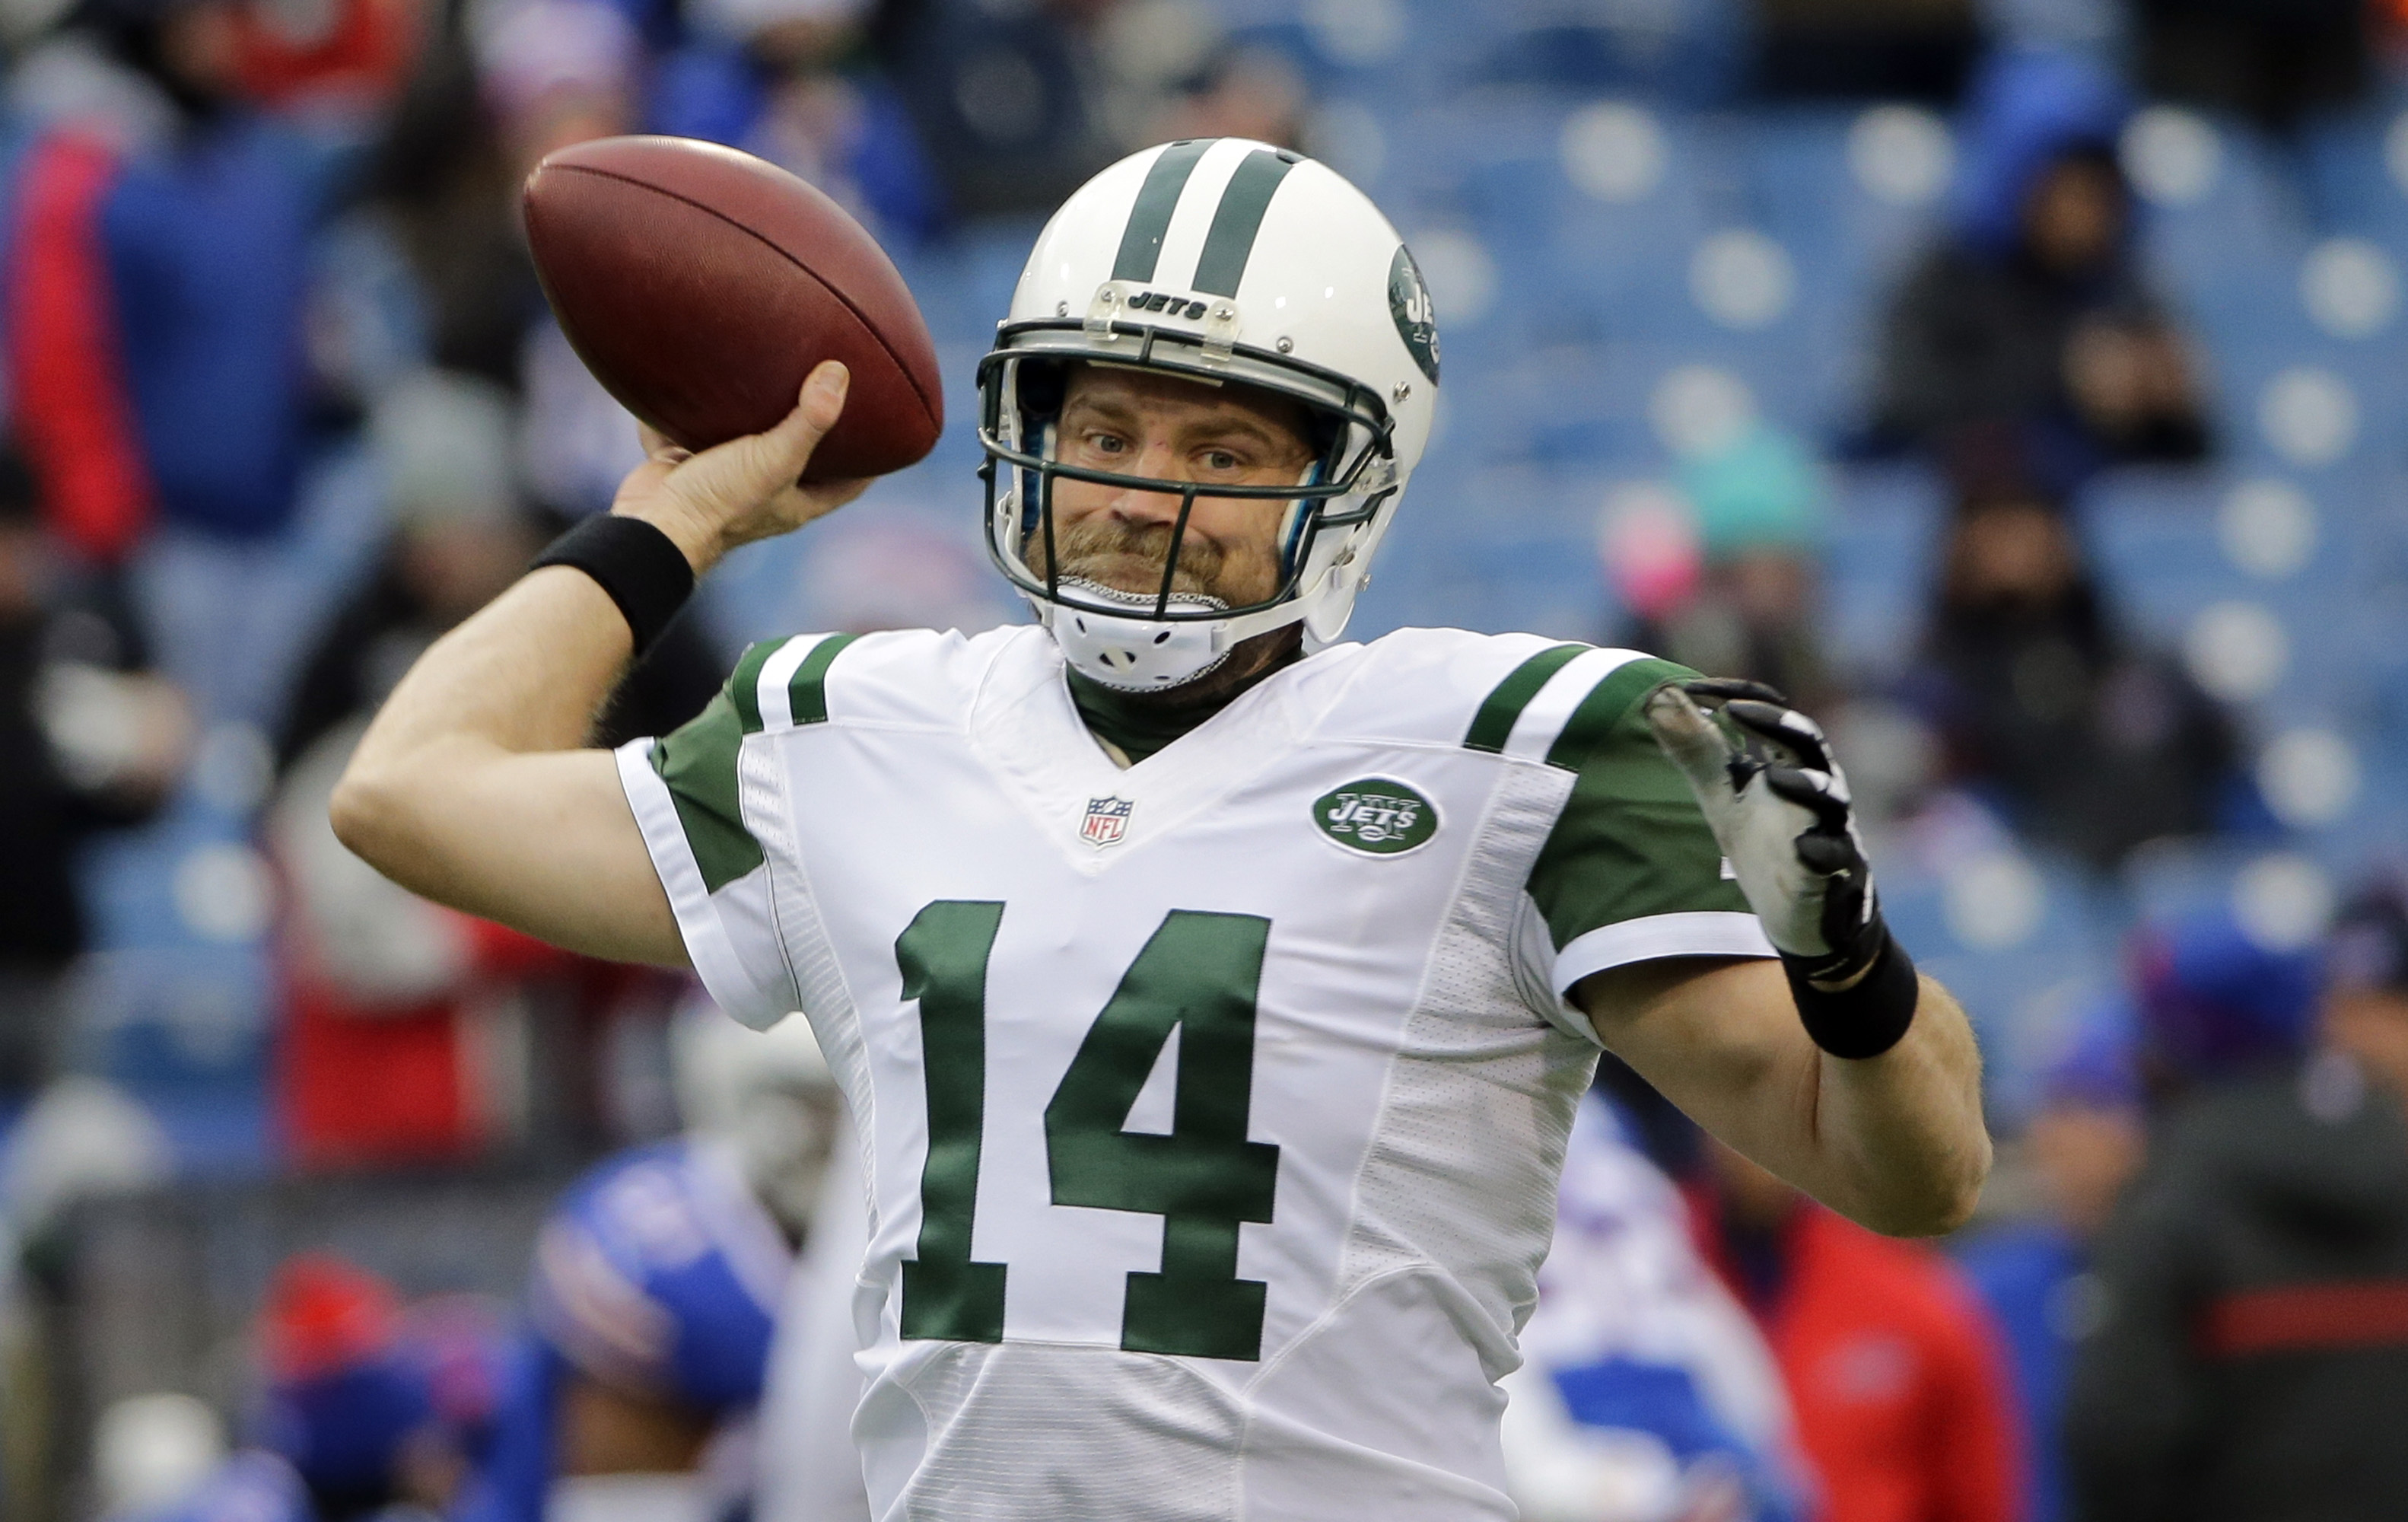 FILE - In this Jan. 3, 2016, file photo, New York Jets quarterback Ryan Fitzpatrick throws a pass before an NFL football game against the Buffalo Bills in Orchard Park, N.Y. A person familiar with the negotiations told The Associated Press on Friday night